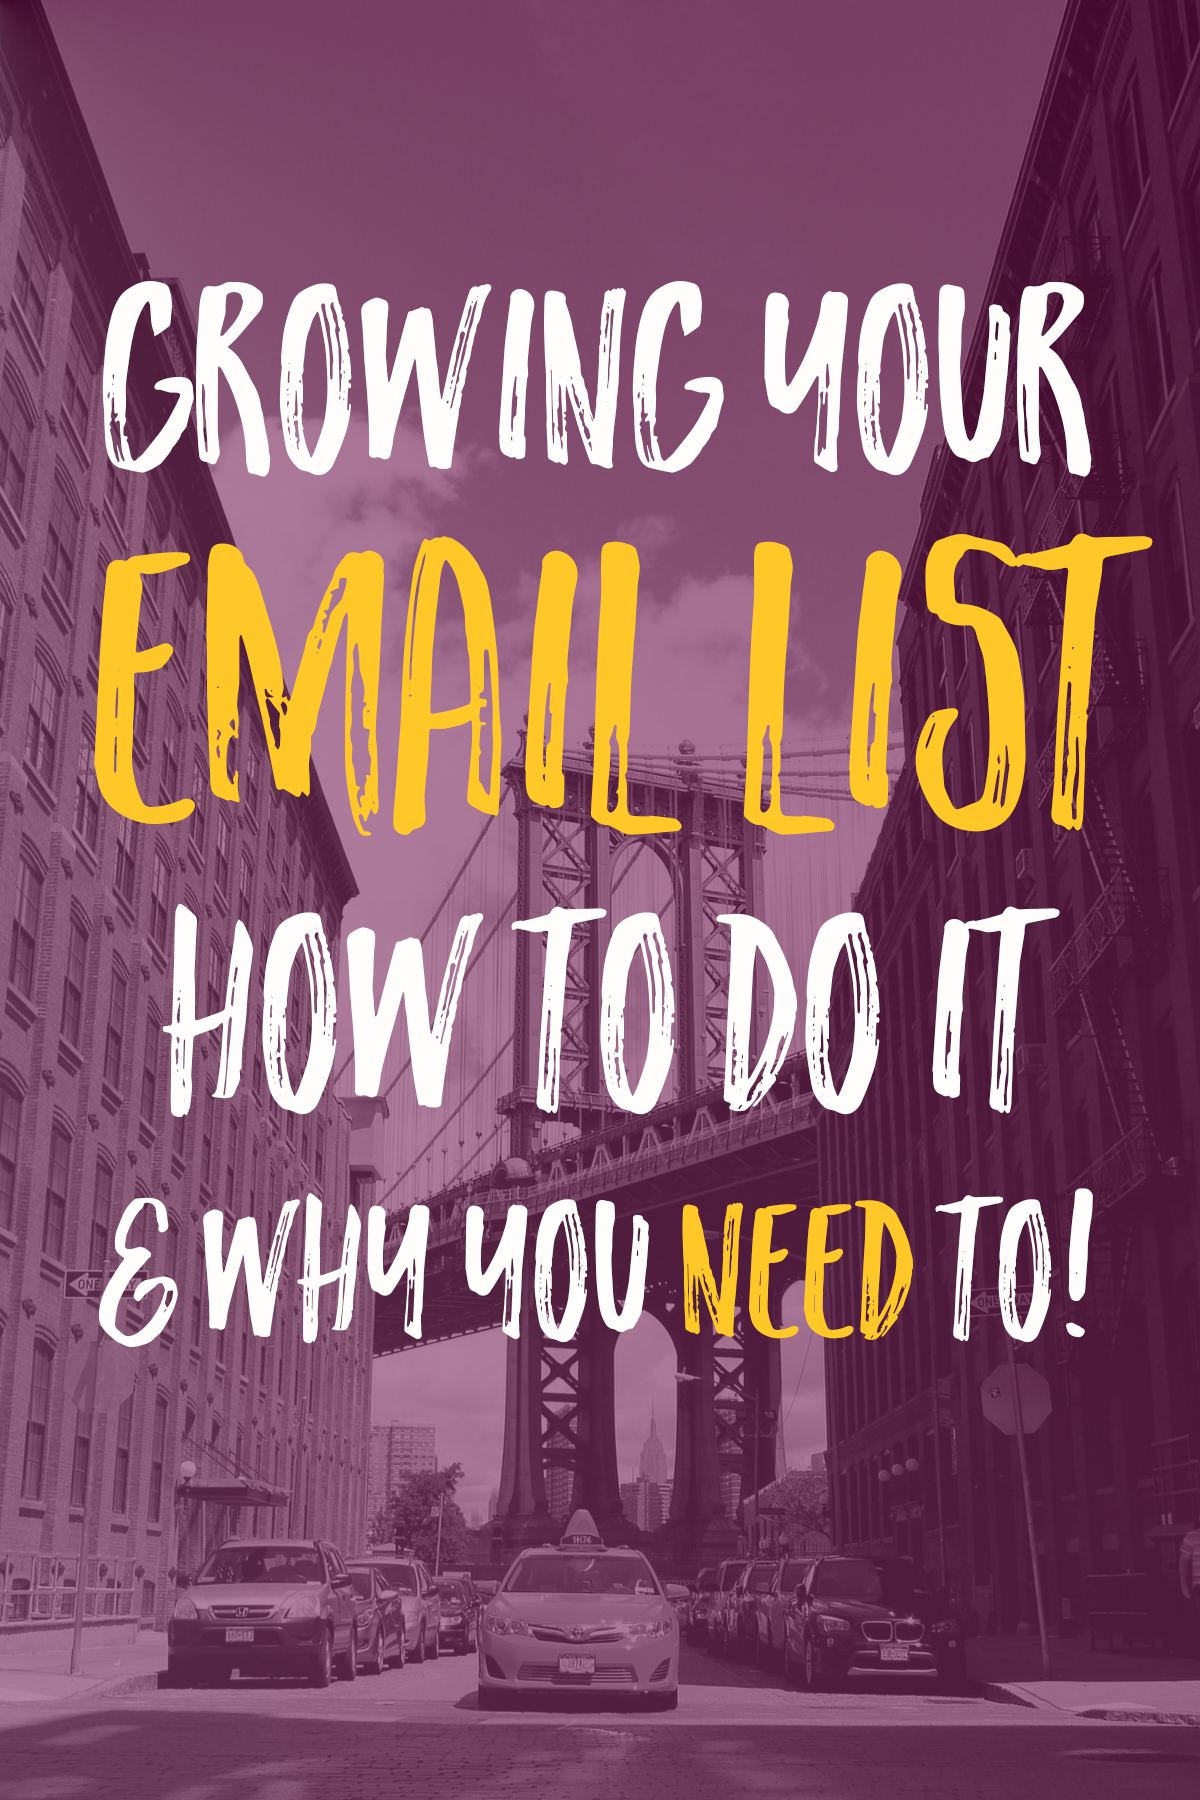 Growing your email list is one of the most important things that you can do for your business, and it's not hard! Let me walk you through the process!